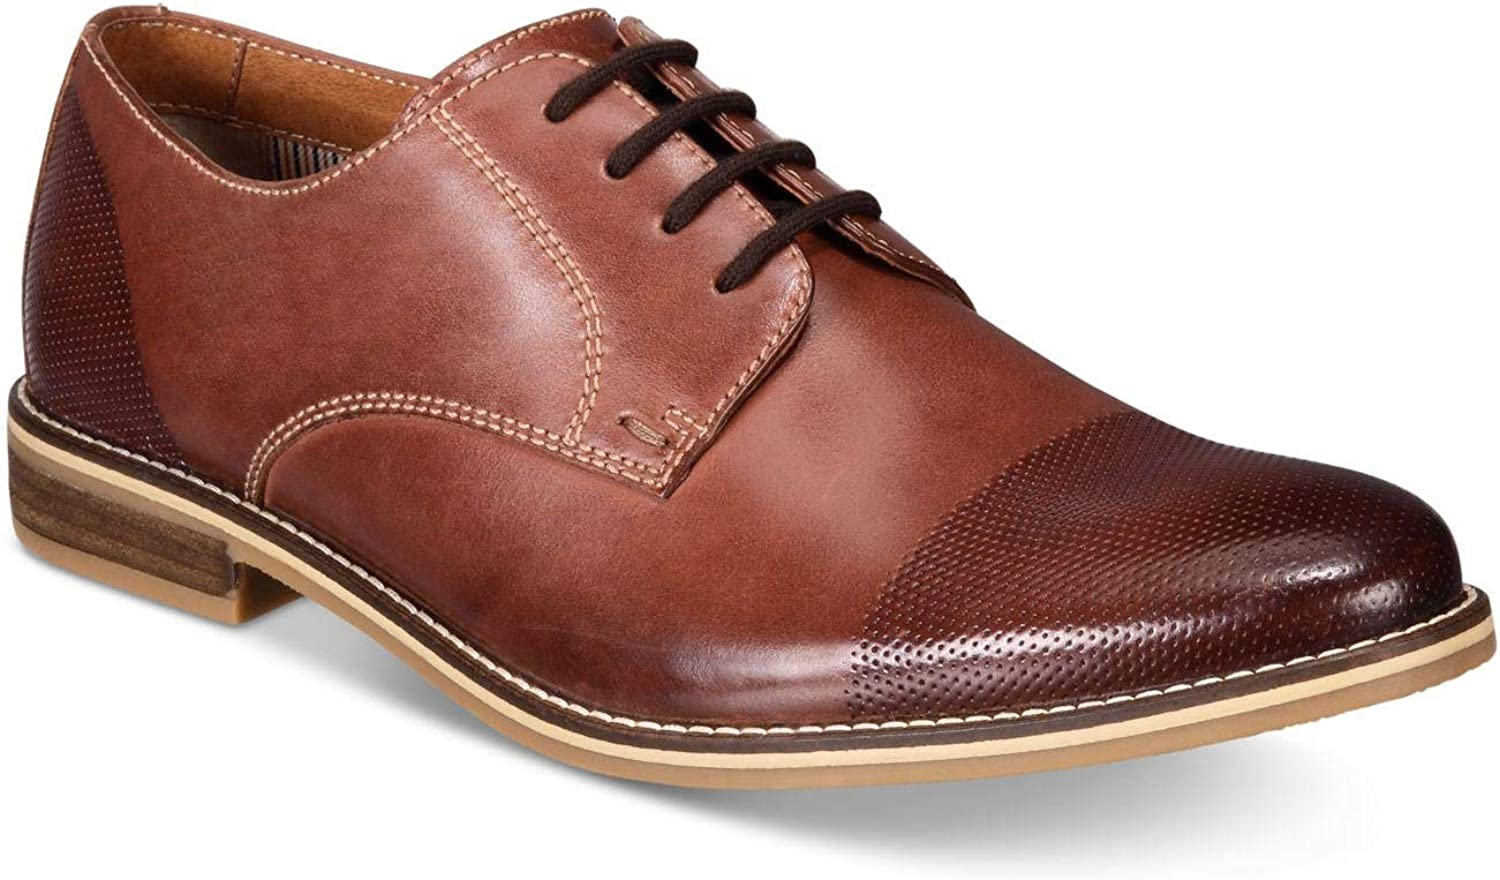 Alfani Mens Chadwick Leather Lace Up Casual Oxfords, Tan, Size 8.0